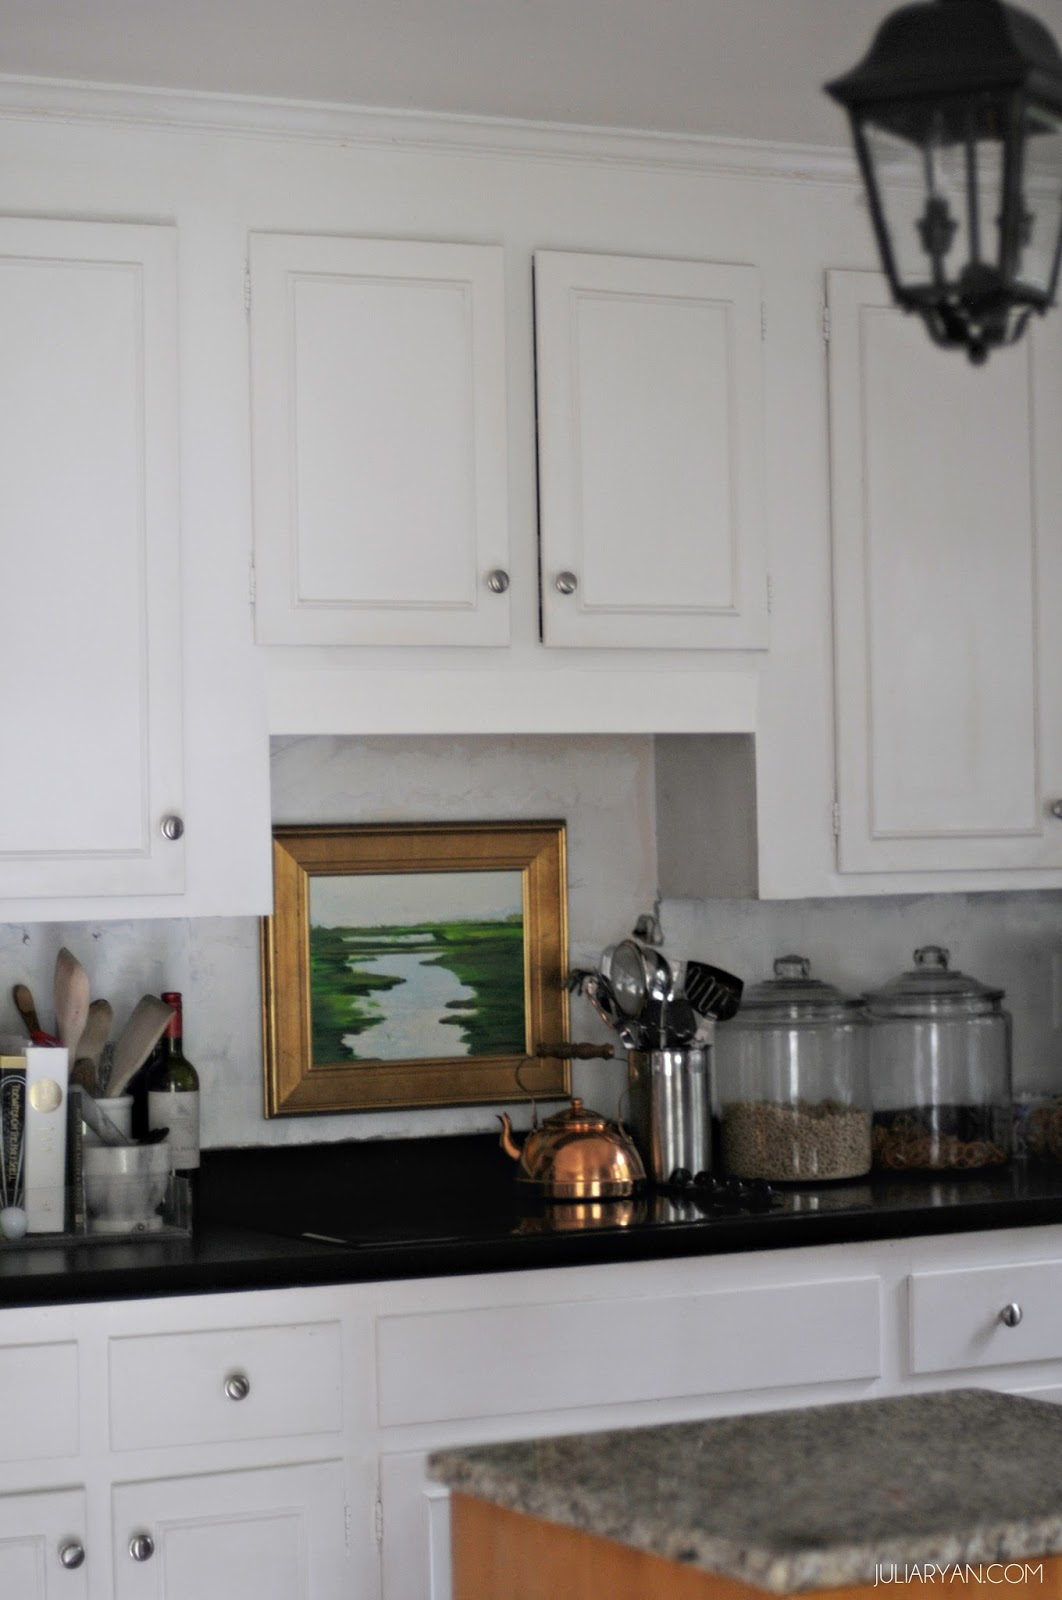 How To Cover Holes In White Kitchen Cabinets